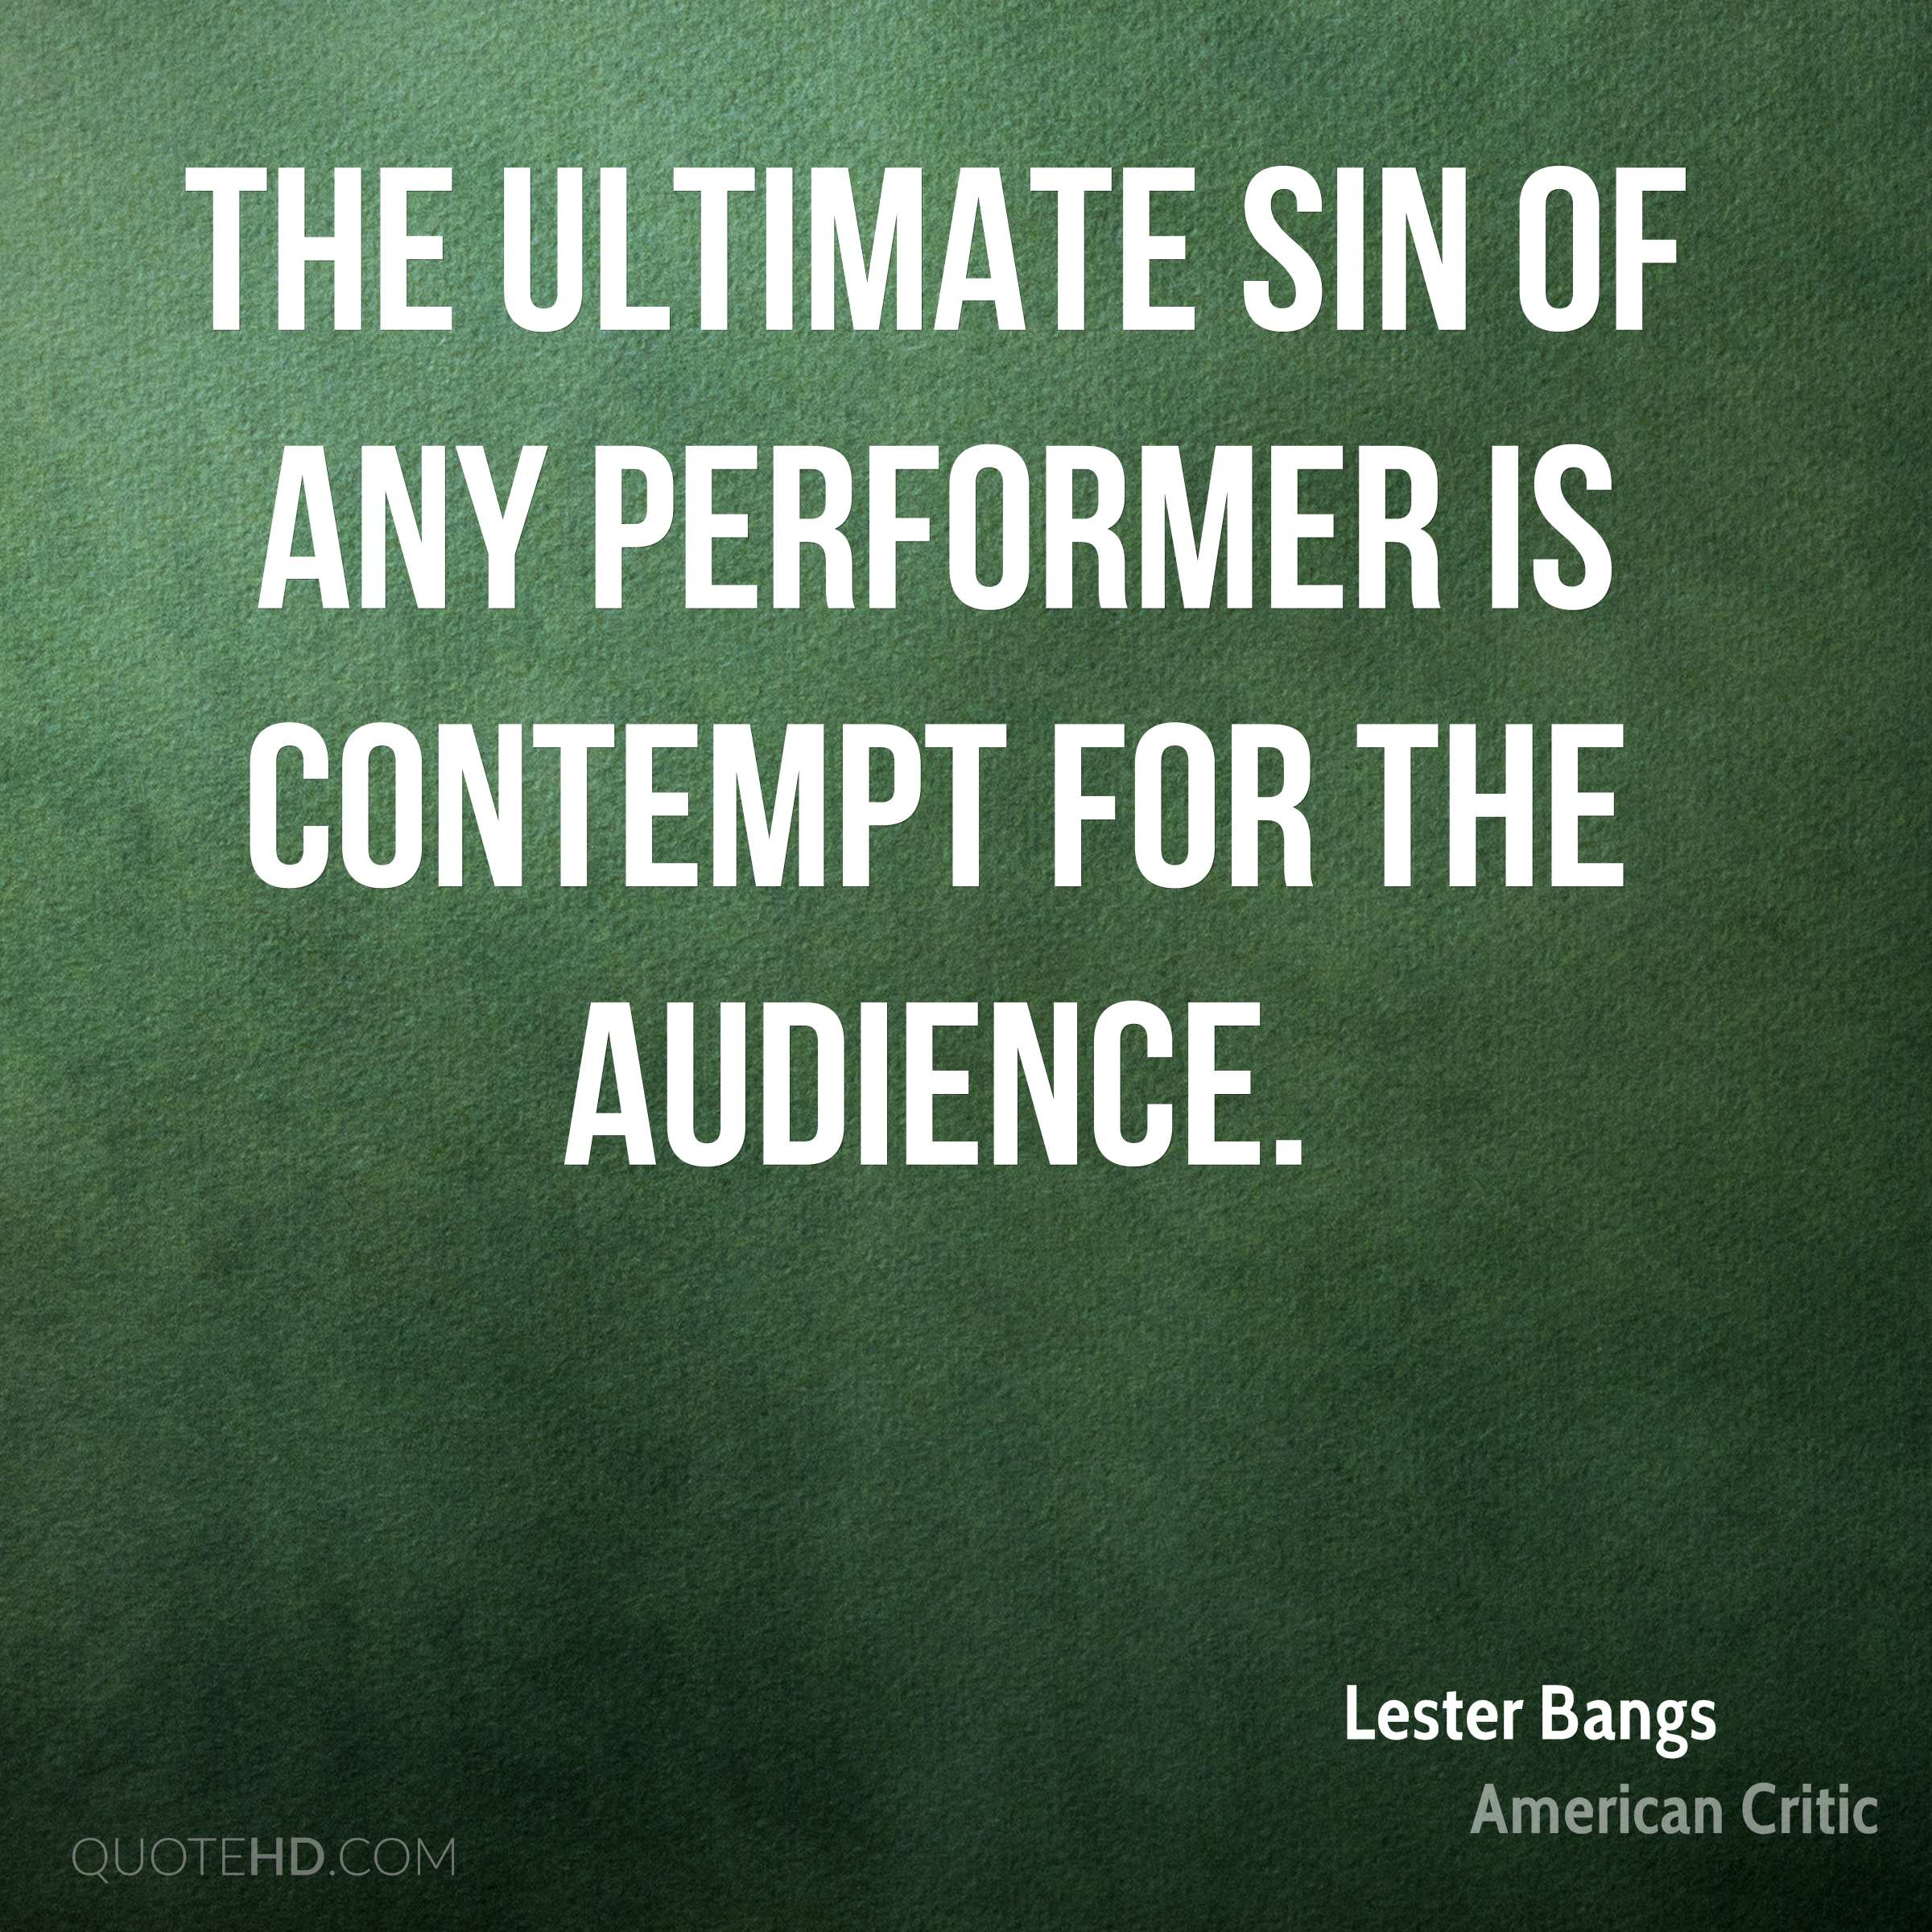 The ultimate sin of any performer is contempt for the audience.